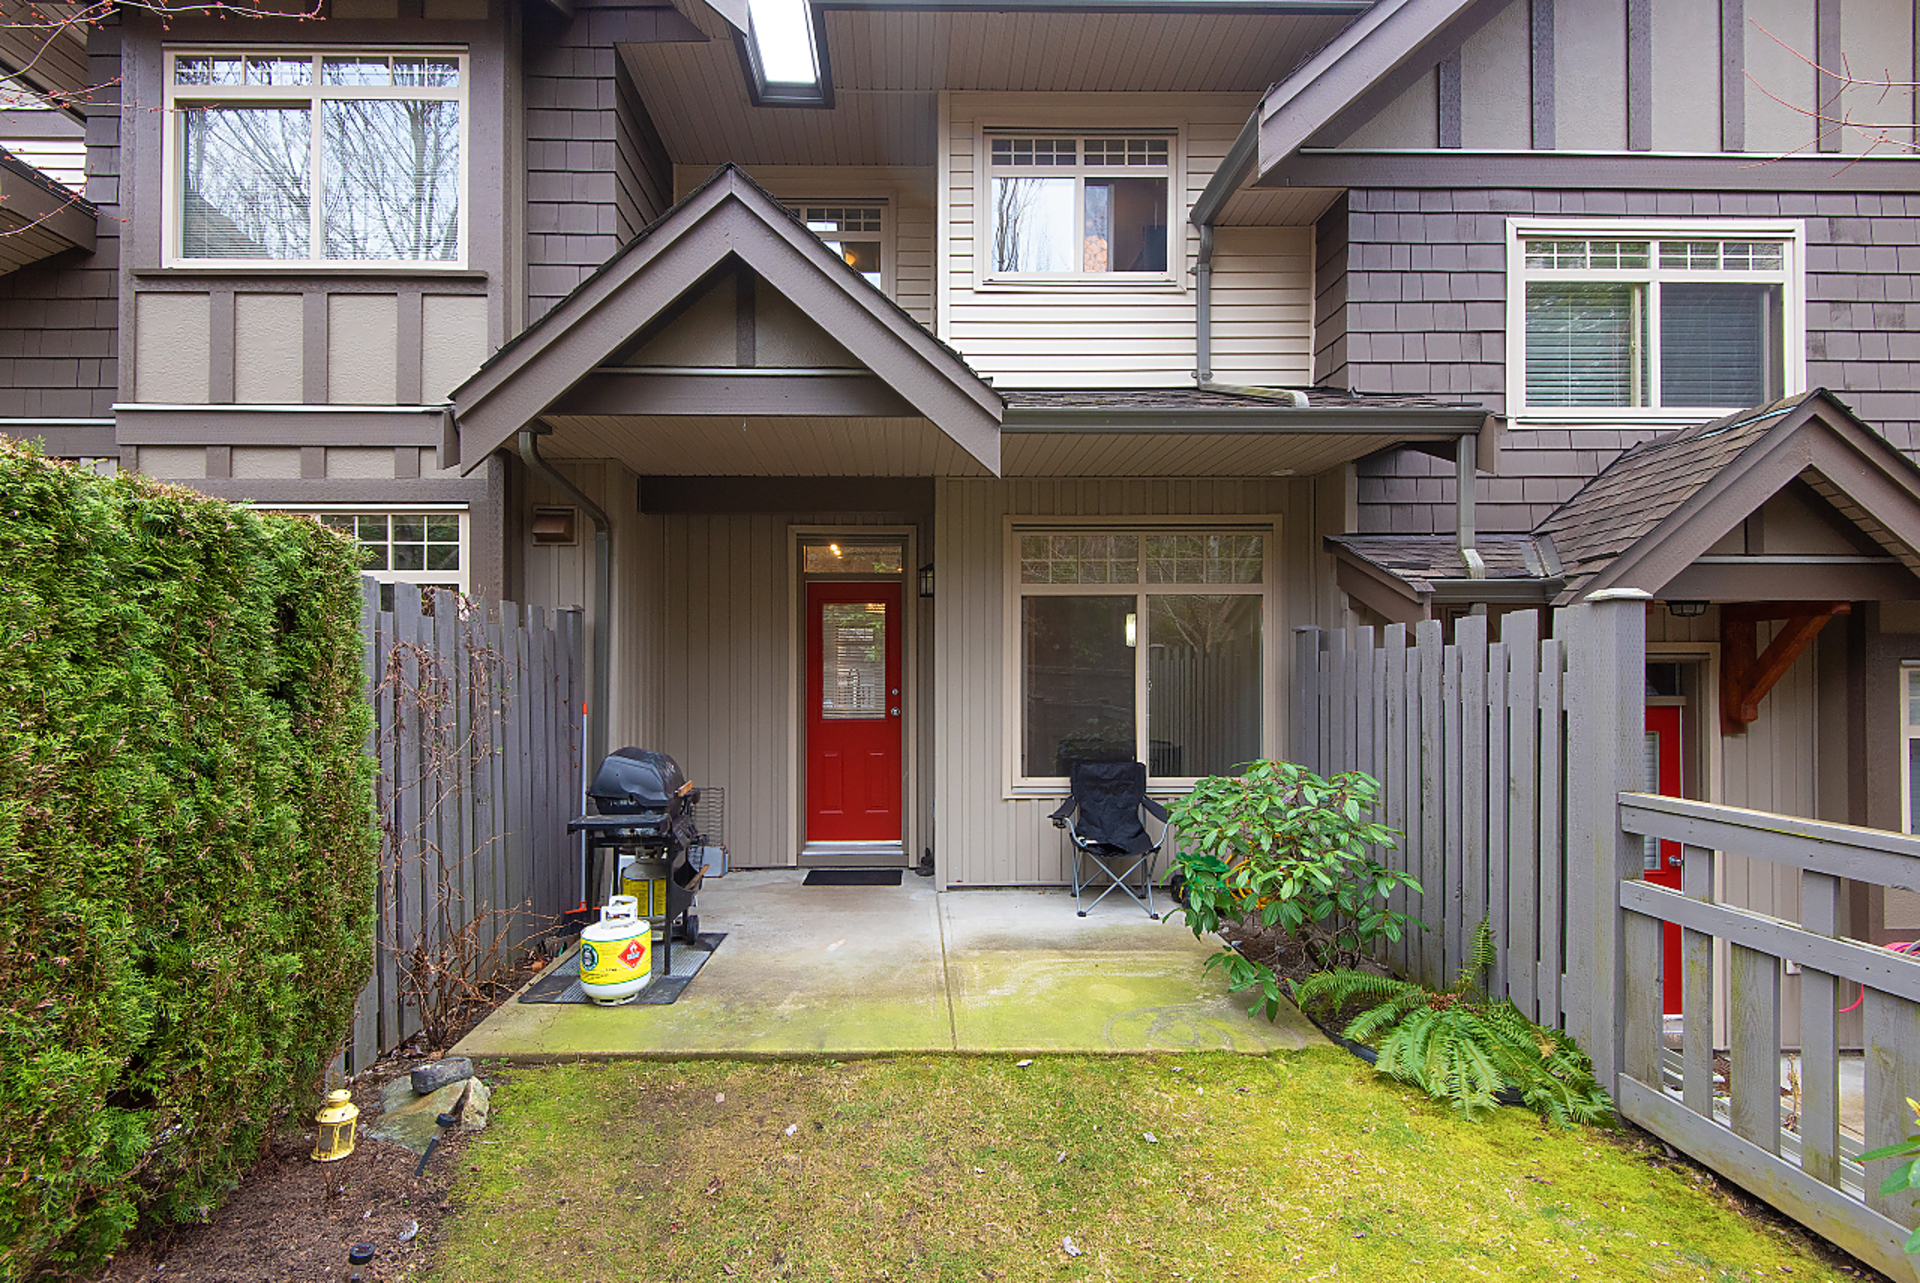 039 at 40 - 55 Hawthorn Drive, Heritage Woods PM, Port Moody